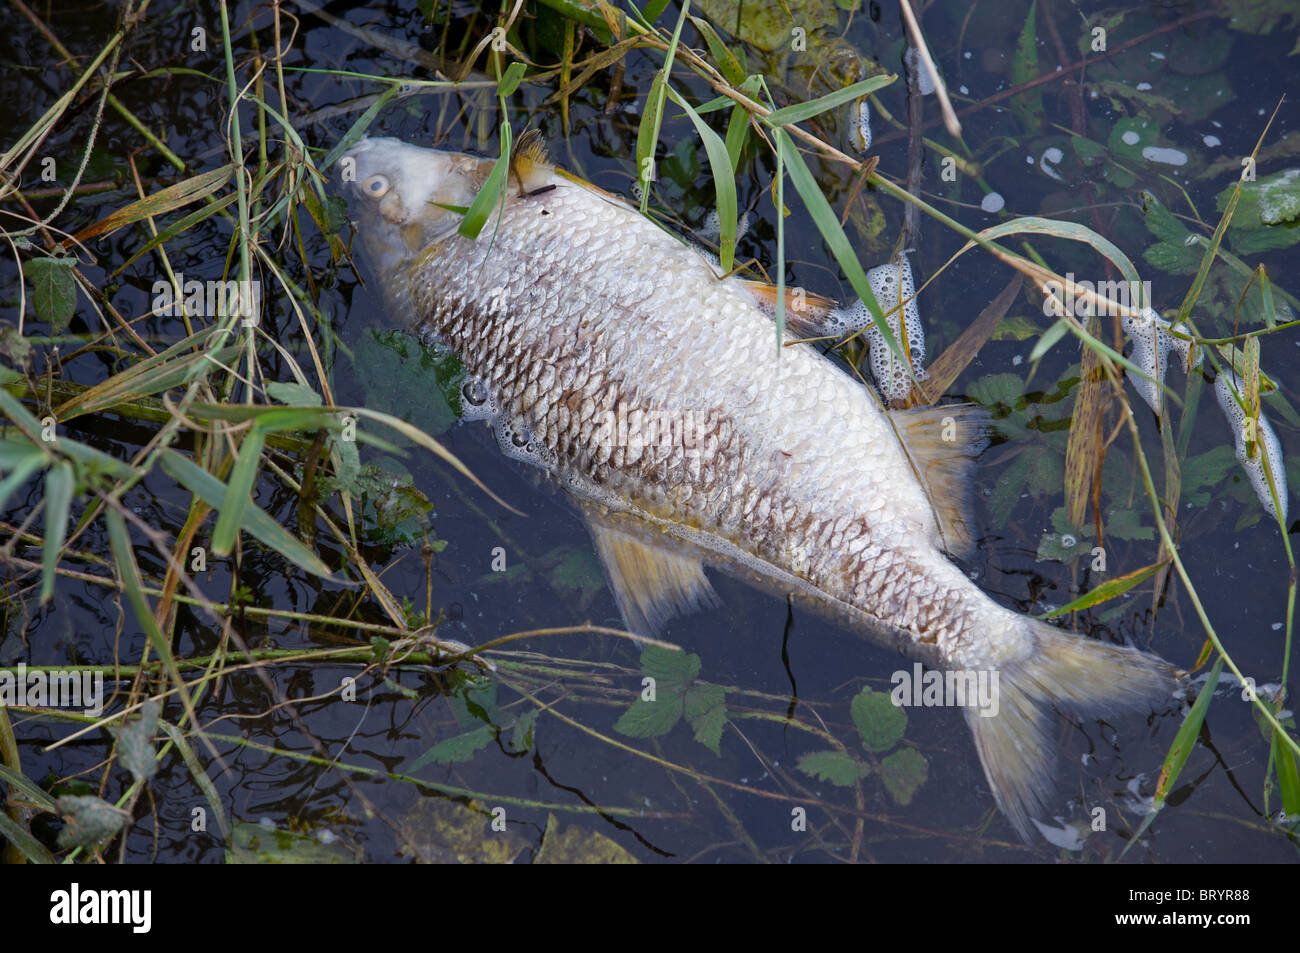 Dead fish, river Ruhr, Duisburg, Germany. - Stock Image